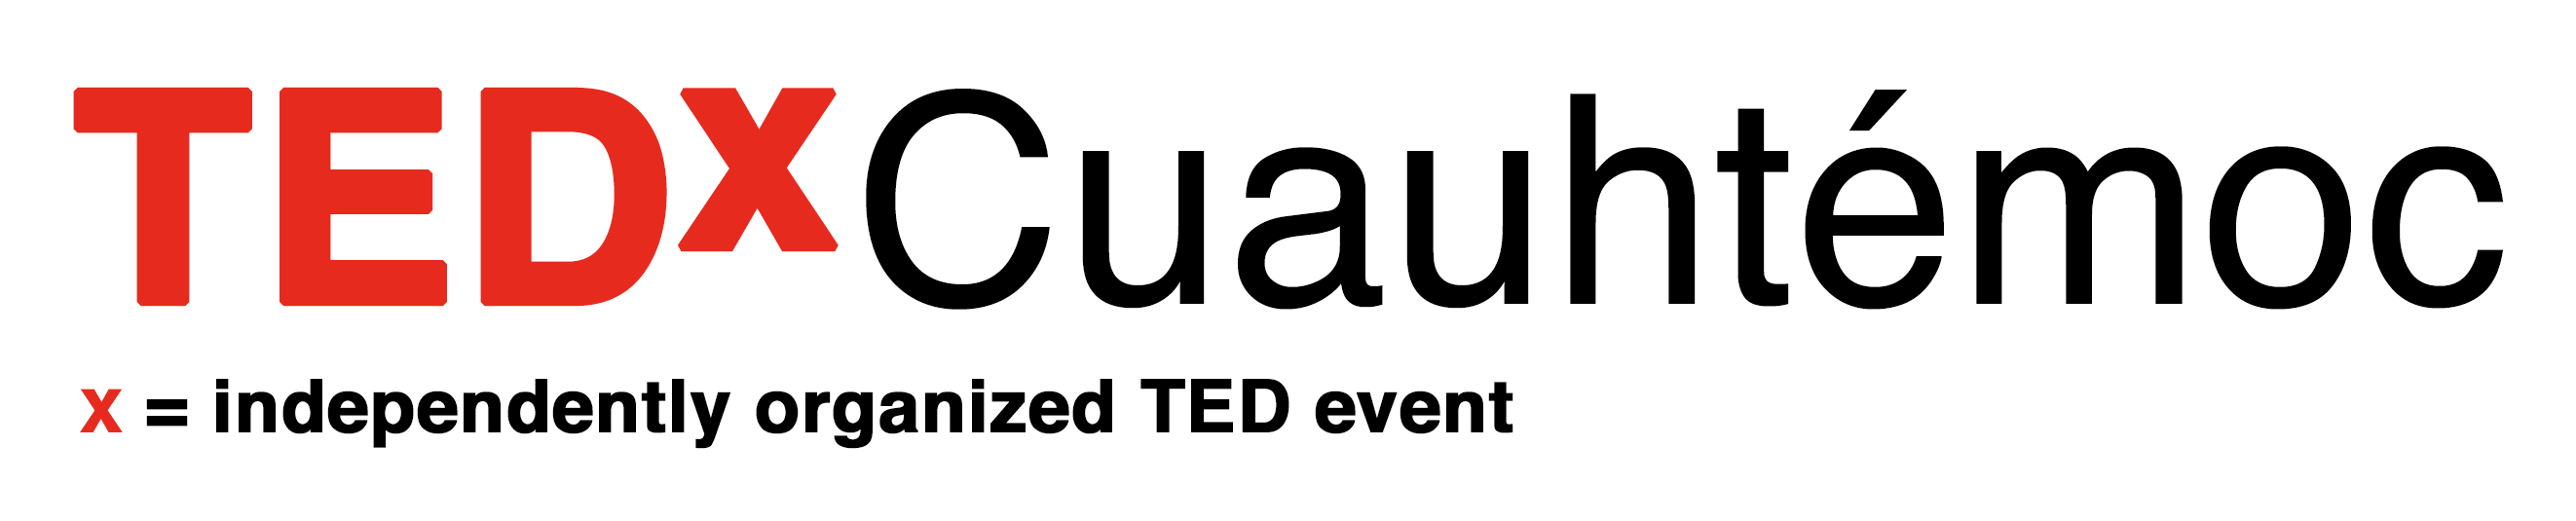 TEDxCuauhtémoc is an annual TEDx event that is held in Mexico City, Mexico.